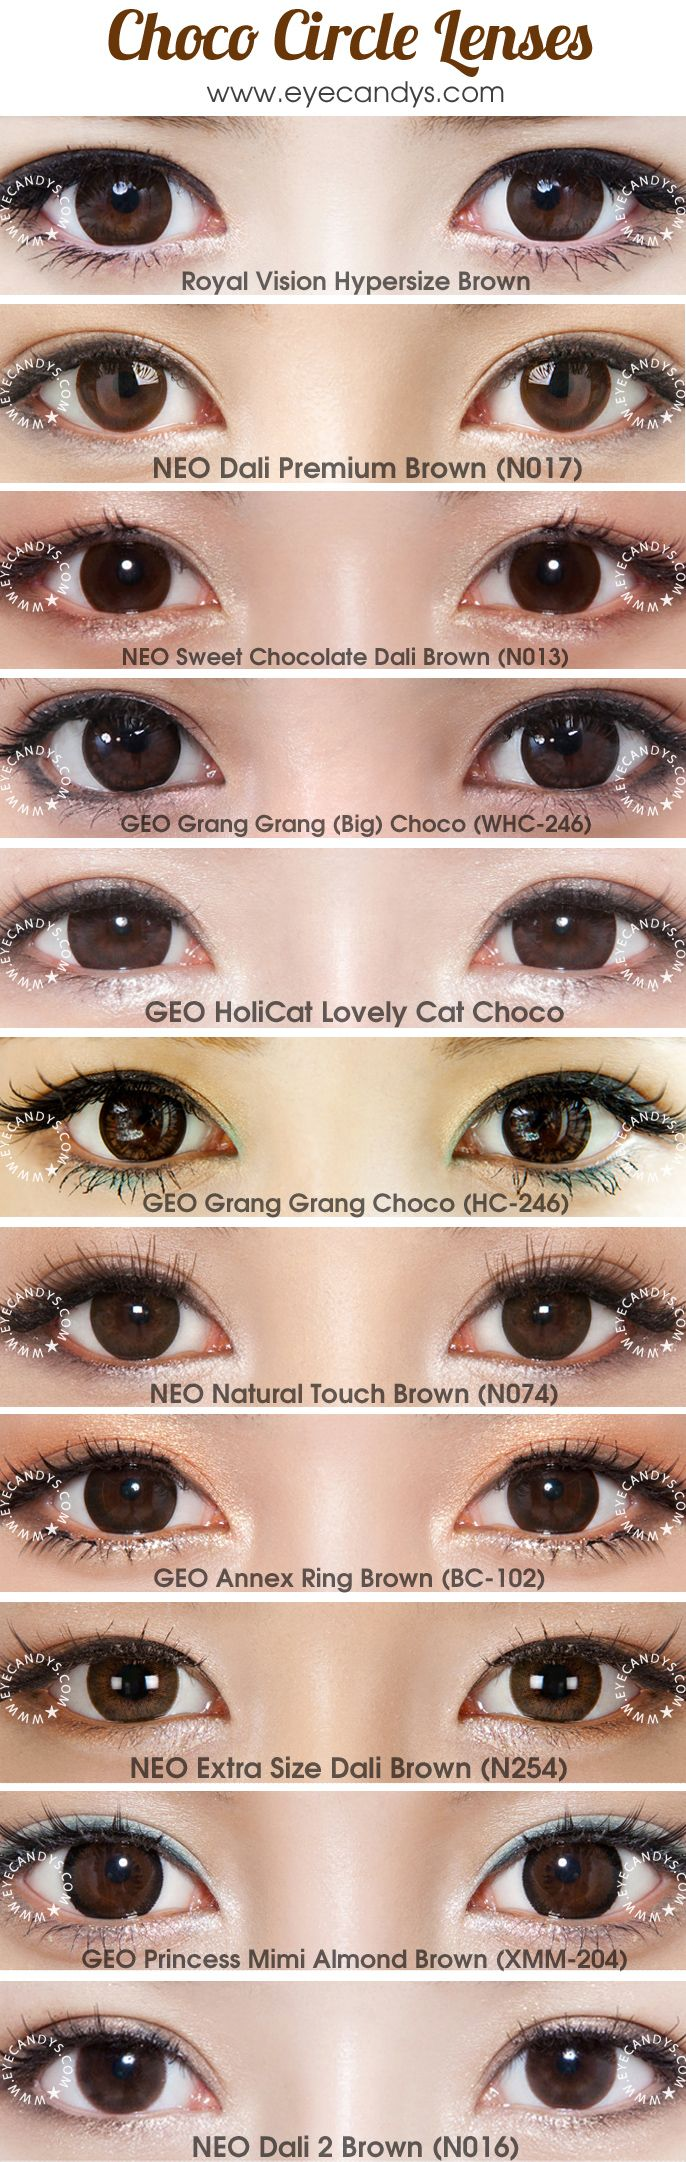 Choco Colored Prescription Plano Colored Contacts Doll Eye Circle Lenses Free Shipping Worldwide Shop Circle Lenses Contact Lenses Colored Colored Contacts